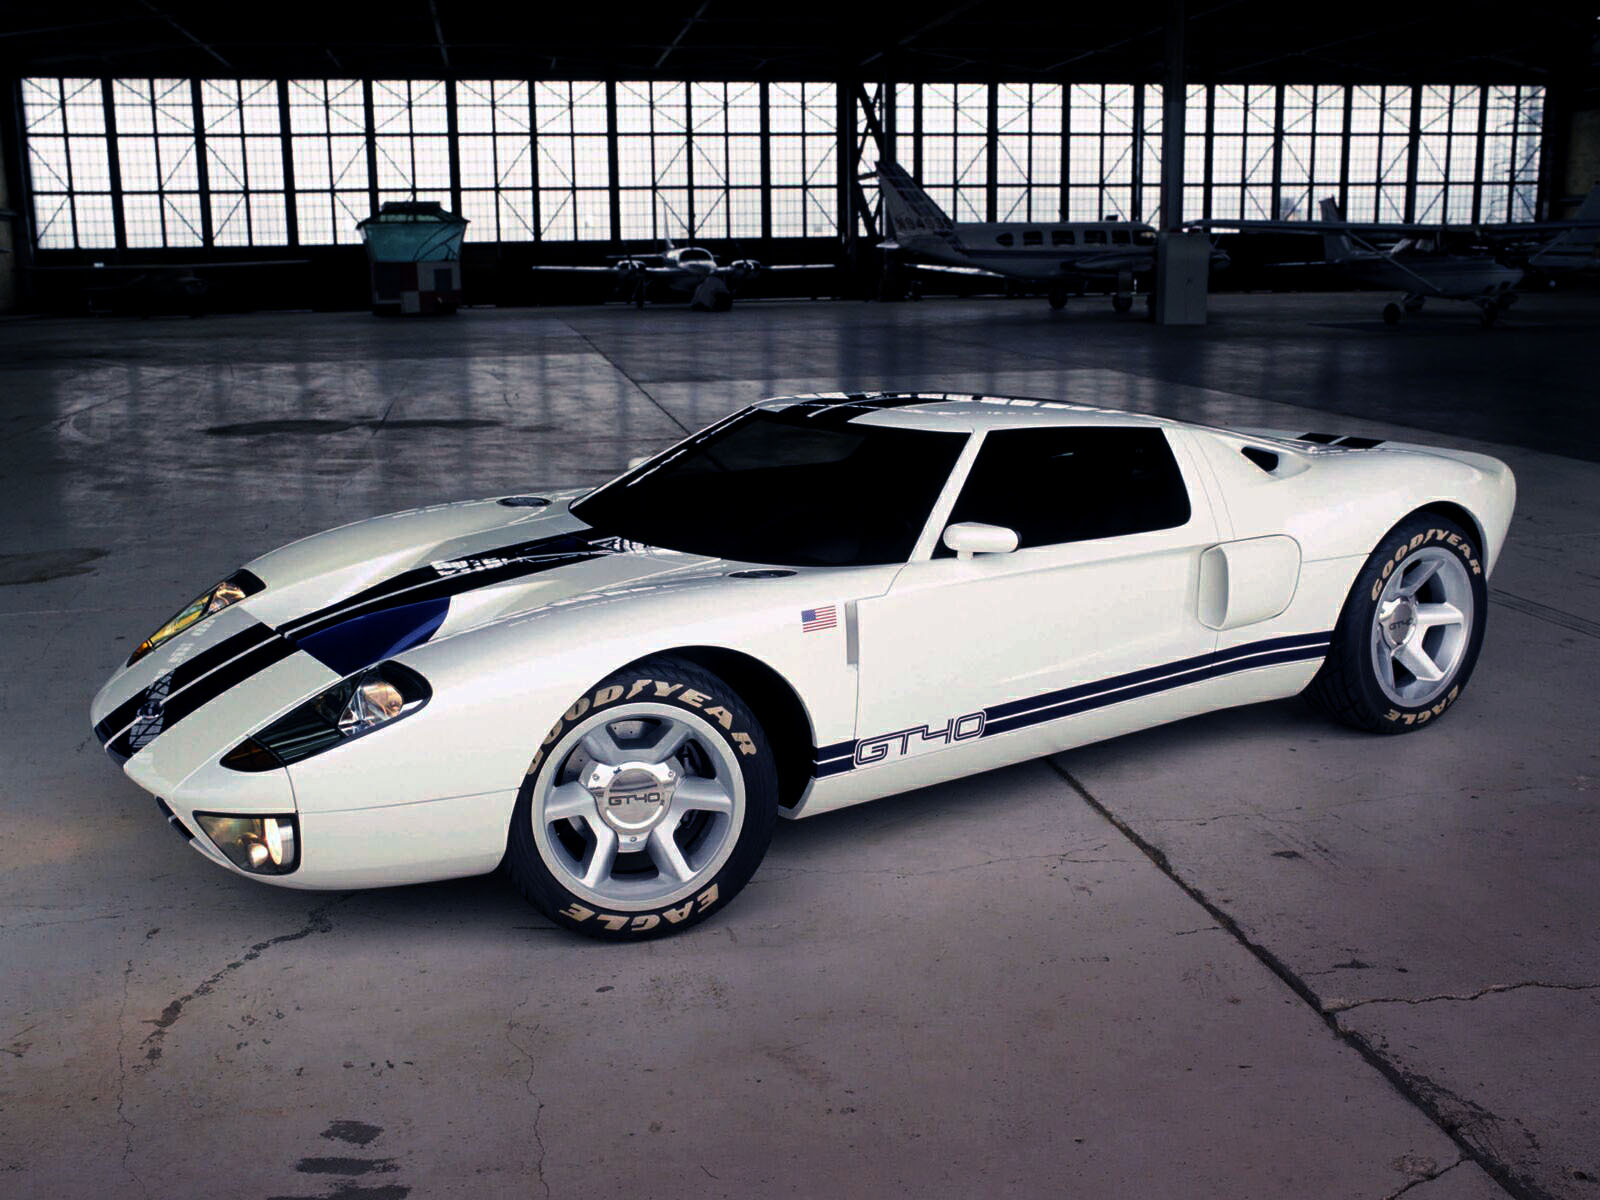 Ford gt-206974